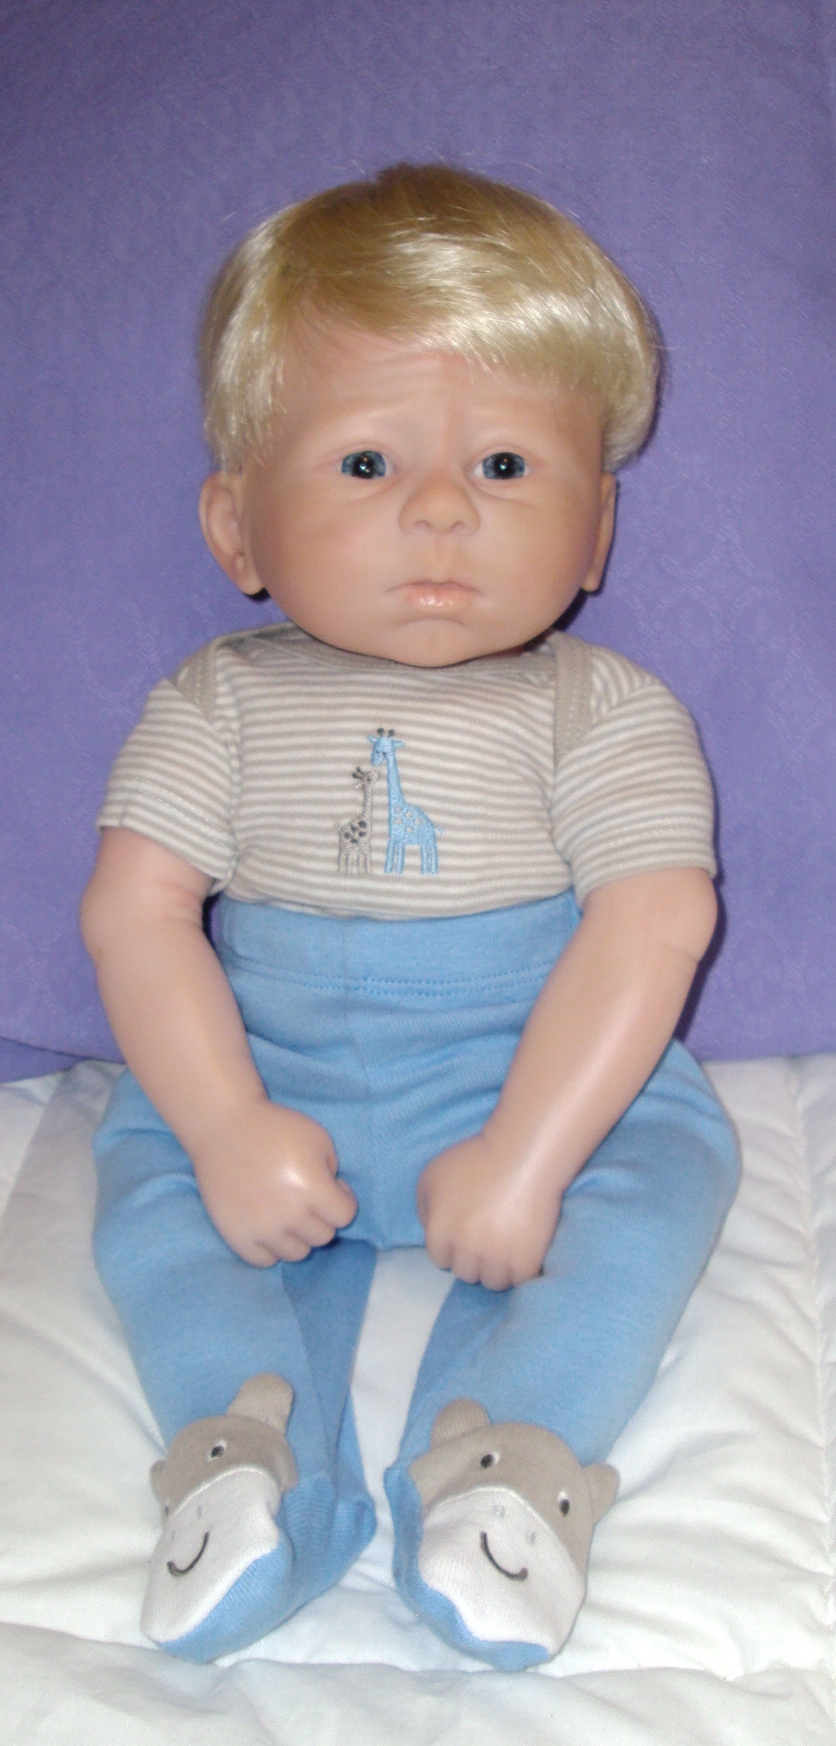 Baby David Lady Laura S Newborn Dolls